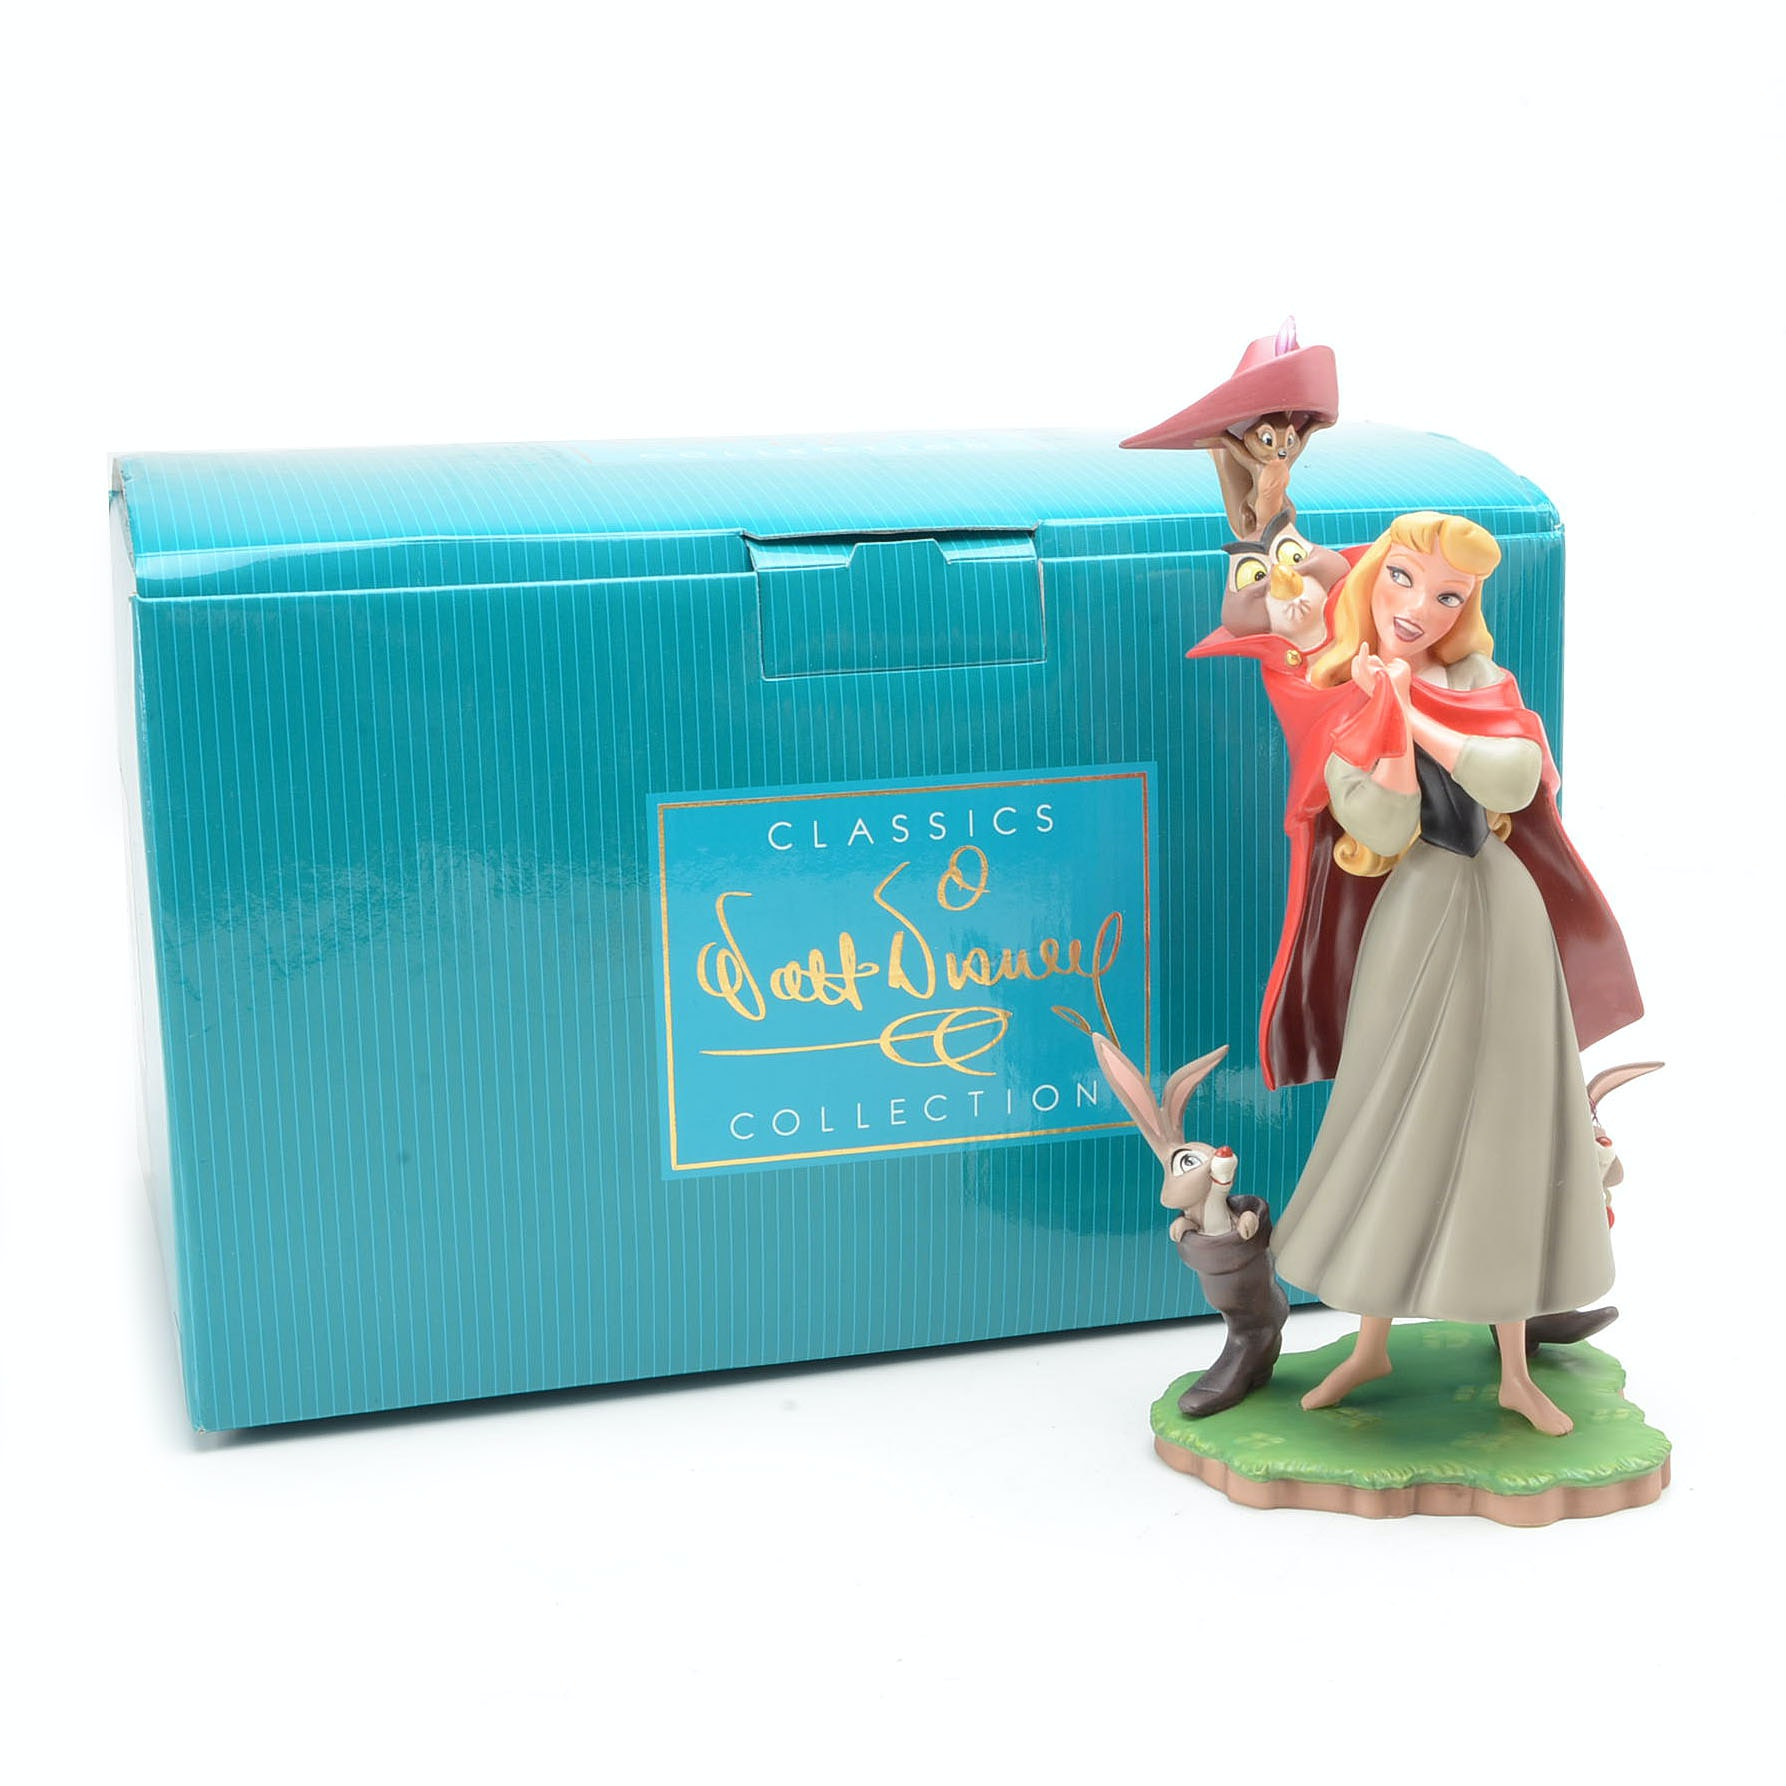 Sleeping Beauty Walt Disney Collection Figurines